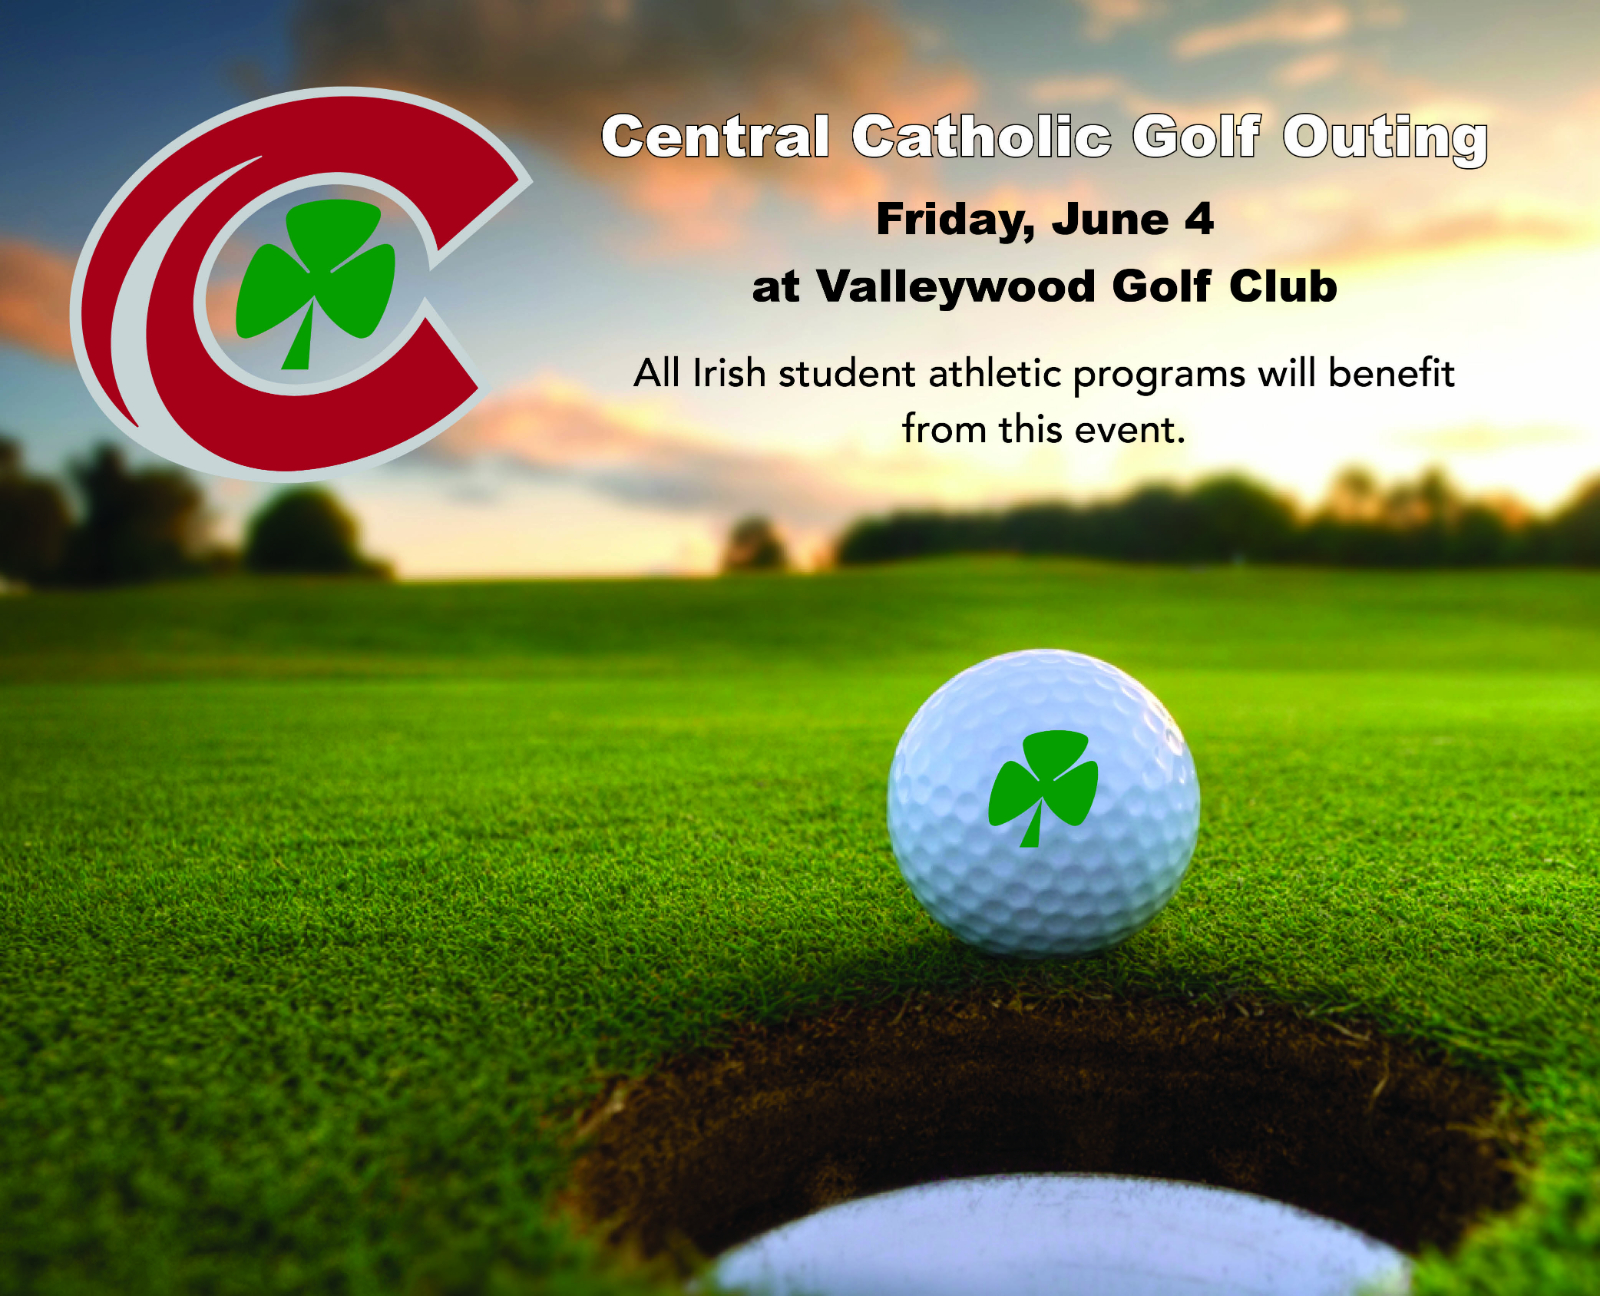 Central Catholic Golf Outing Set for June 4